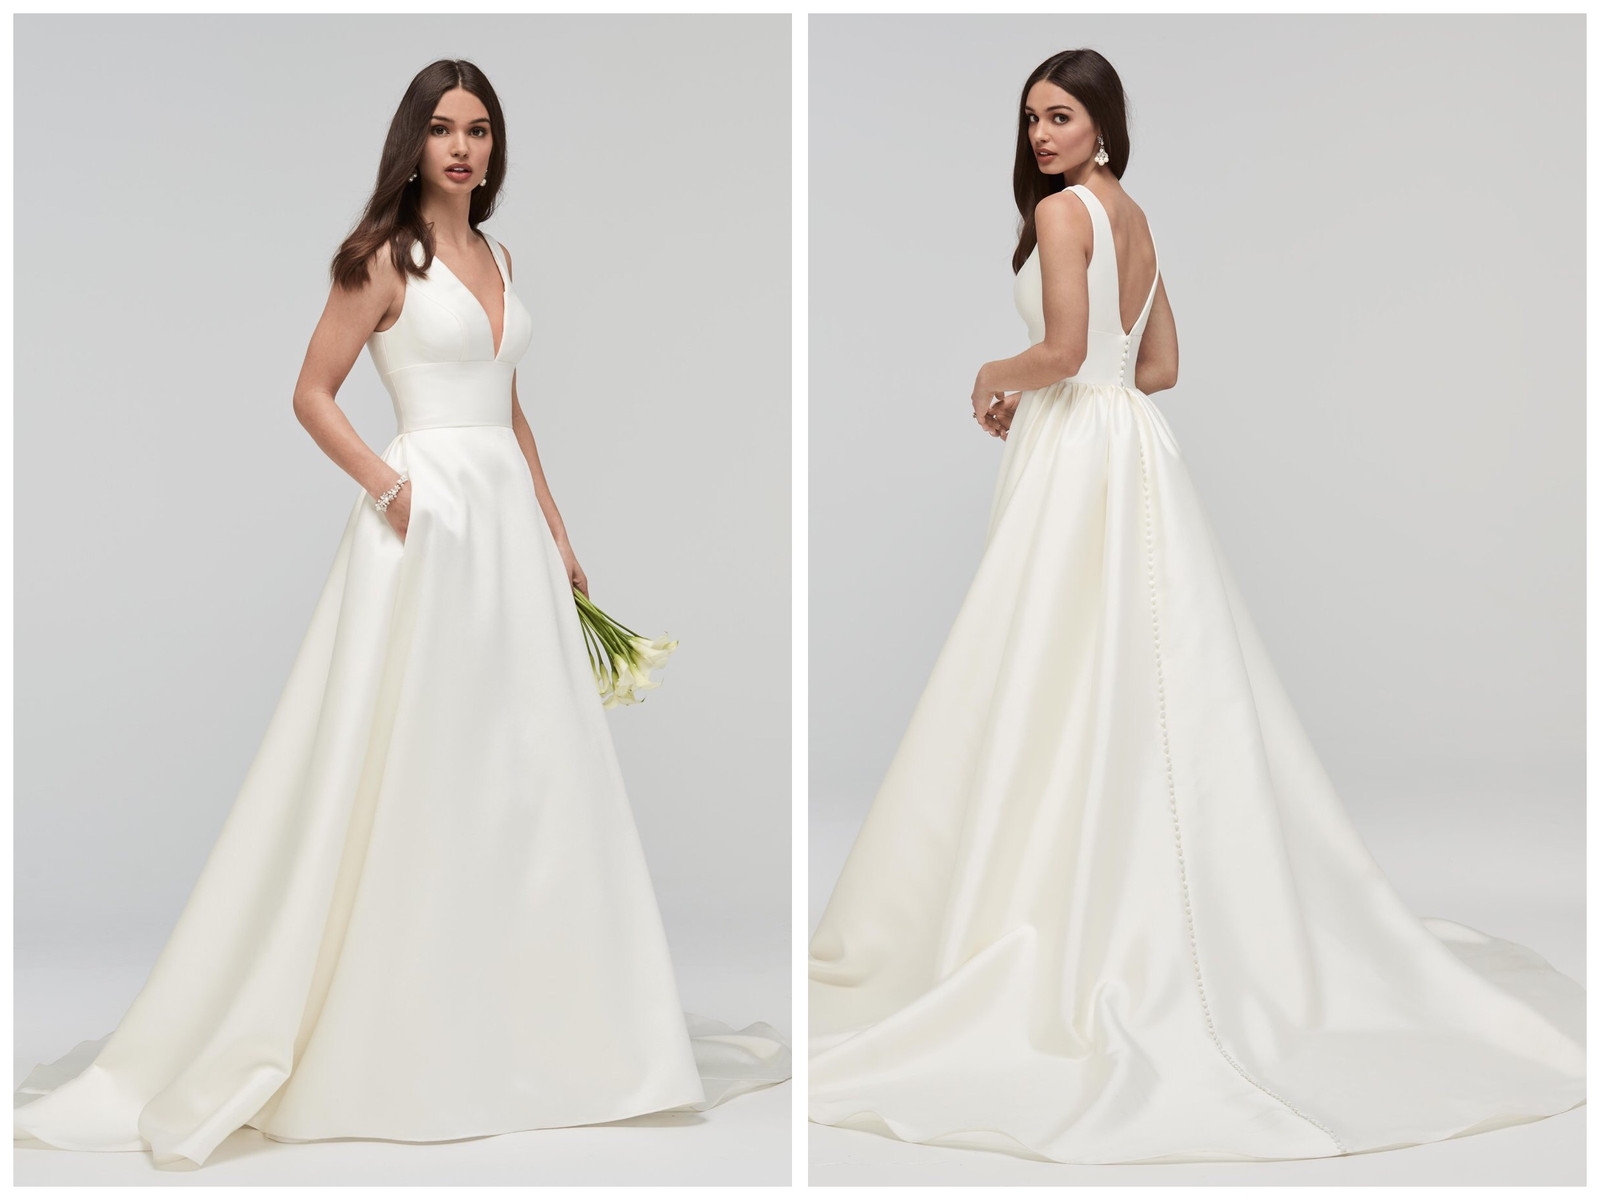 Wedding dress shops, beautiful designer bridal gowns from Europe's top fashion houses. Many available to view. The Wedding Shop Colchester, Essex.